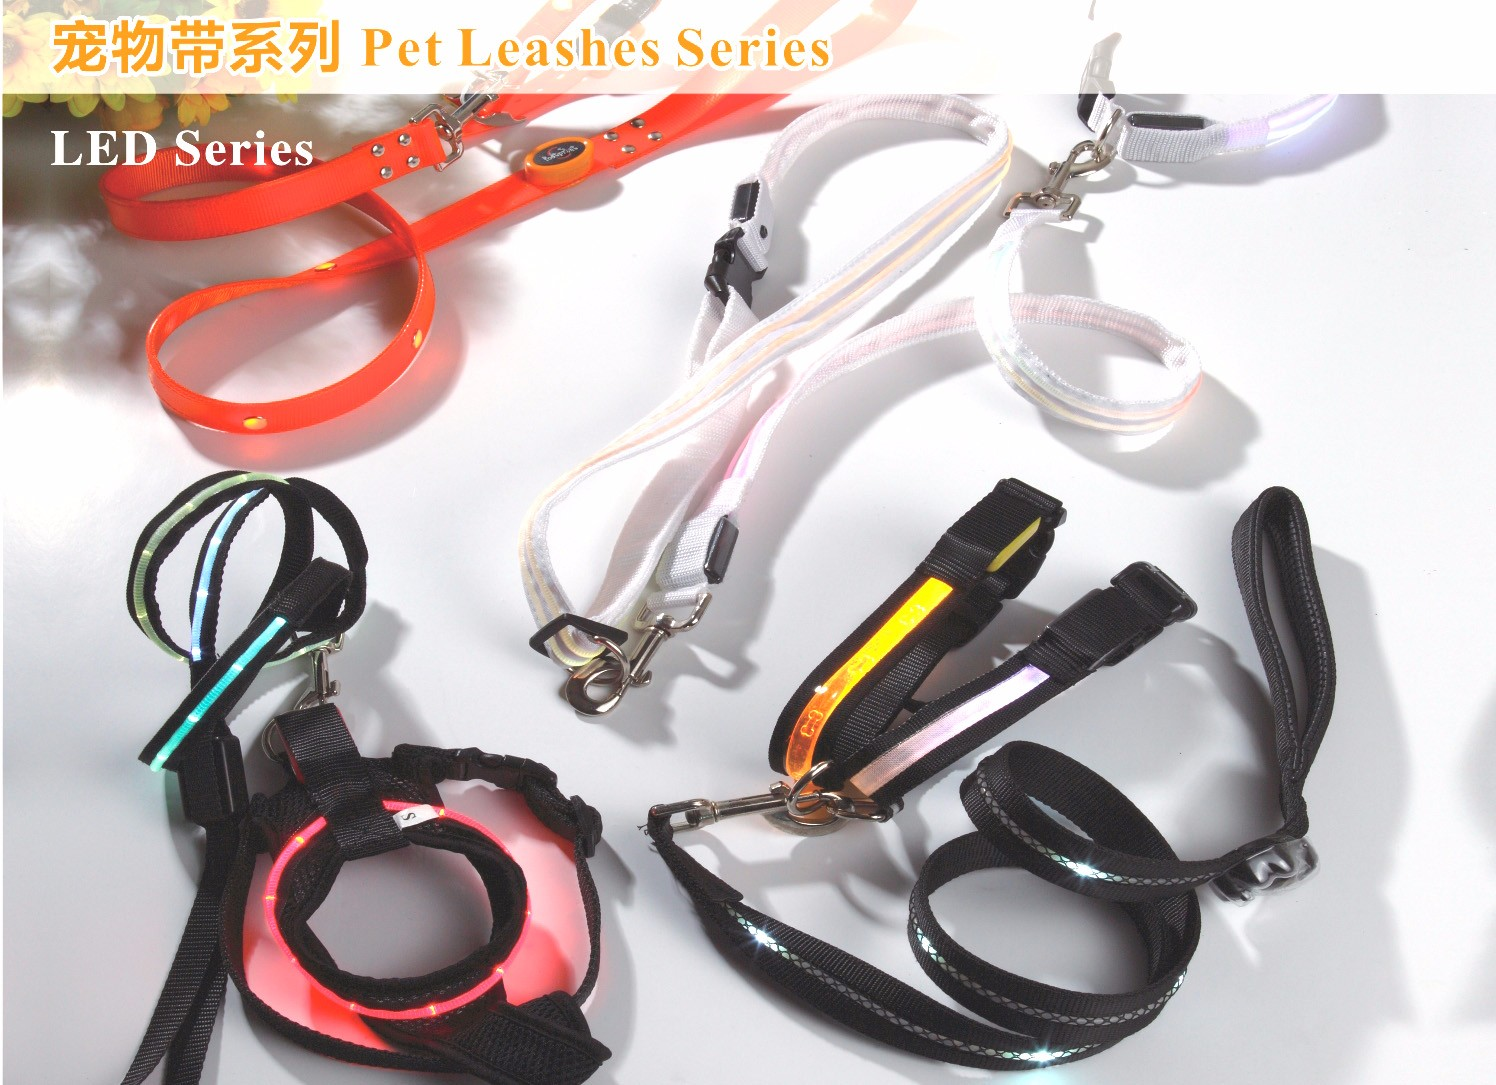 LED Dog Leashes Manufacturers, LED Dog Leashes Factory, Supply LED Dog Leashes